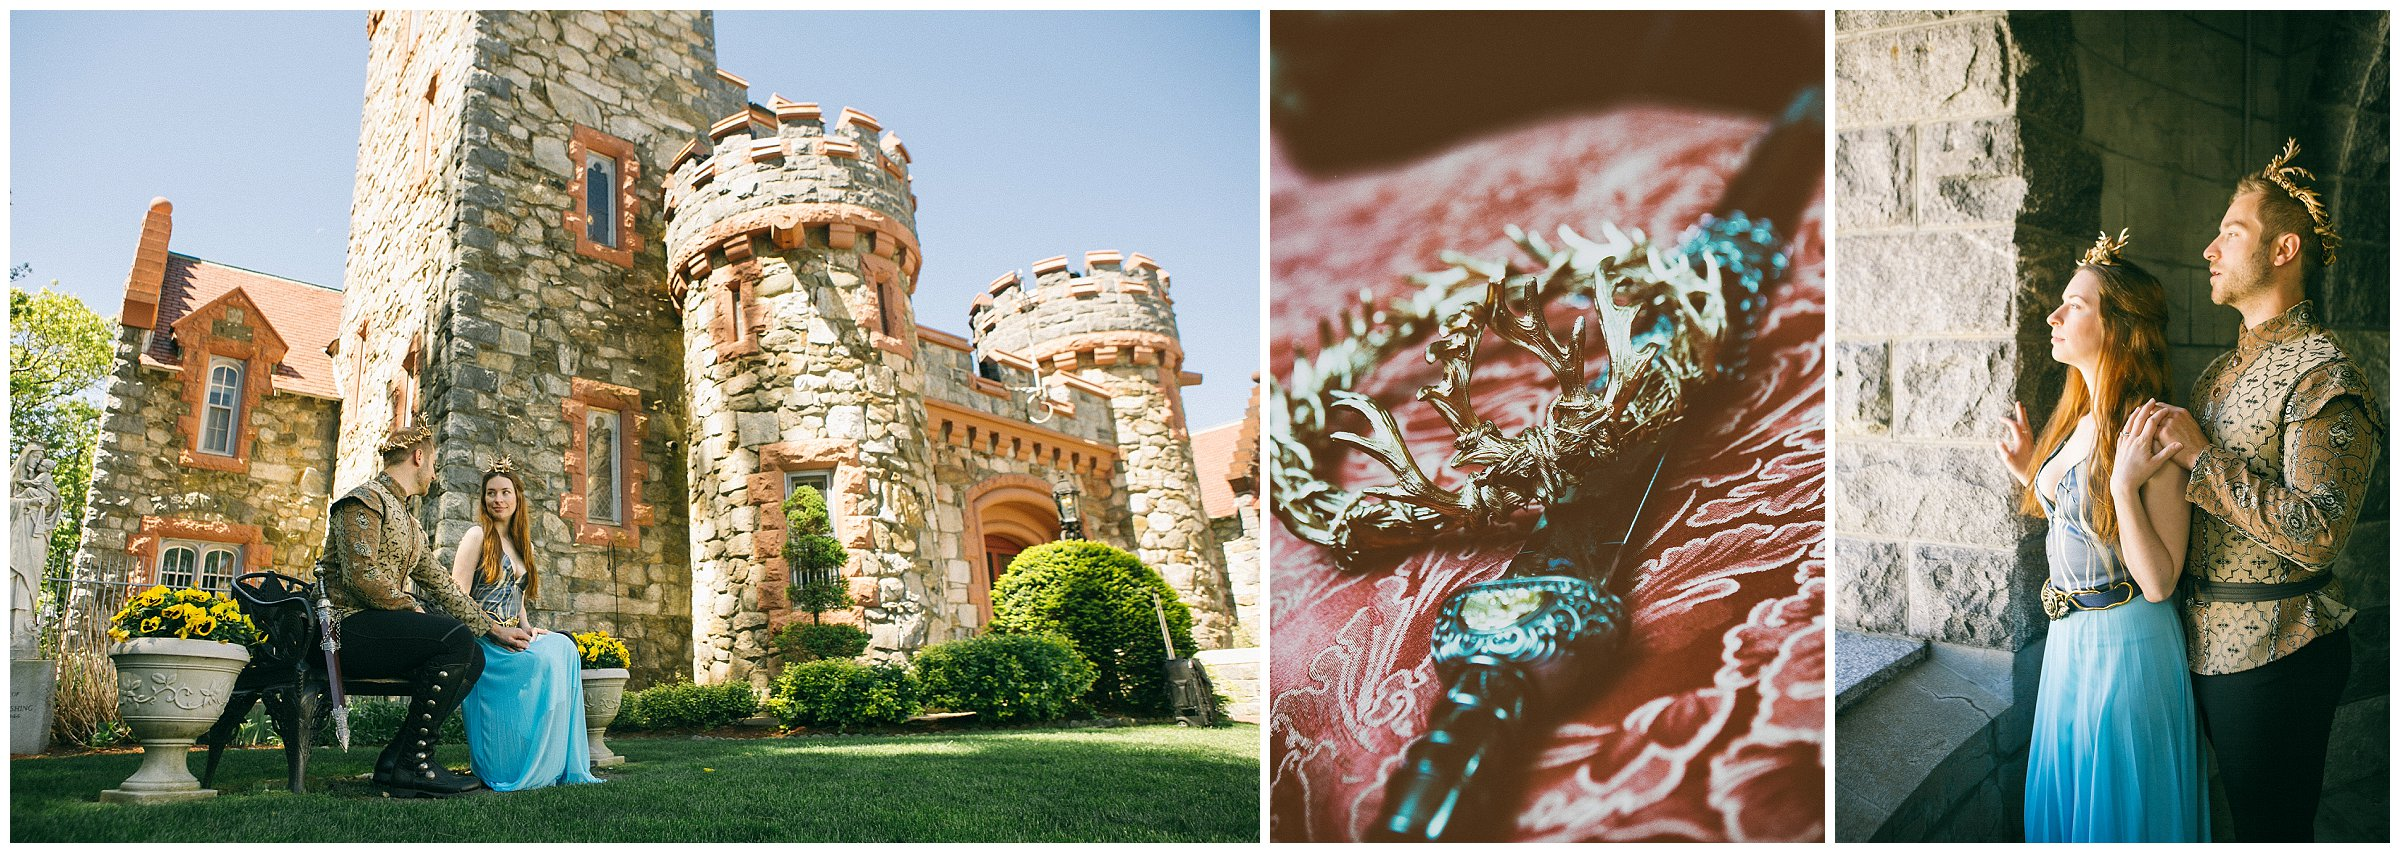 Your engagement session doesn't have to sit inside of the typical box, you can go above and beyond to express yourself and have a lot of fun. We shot this session with a couple very into cosplay at Searle's Castle in New Hampshire.